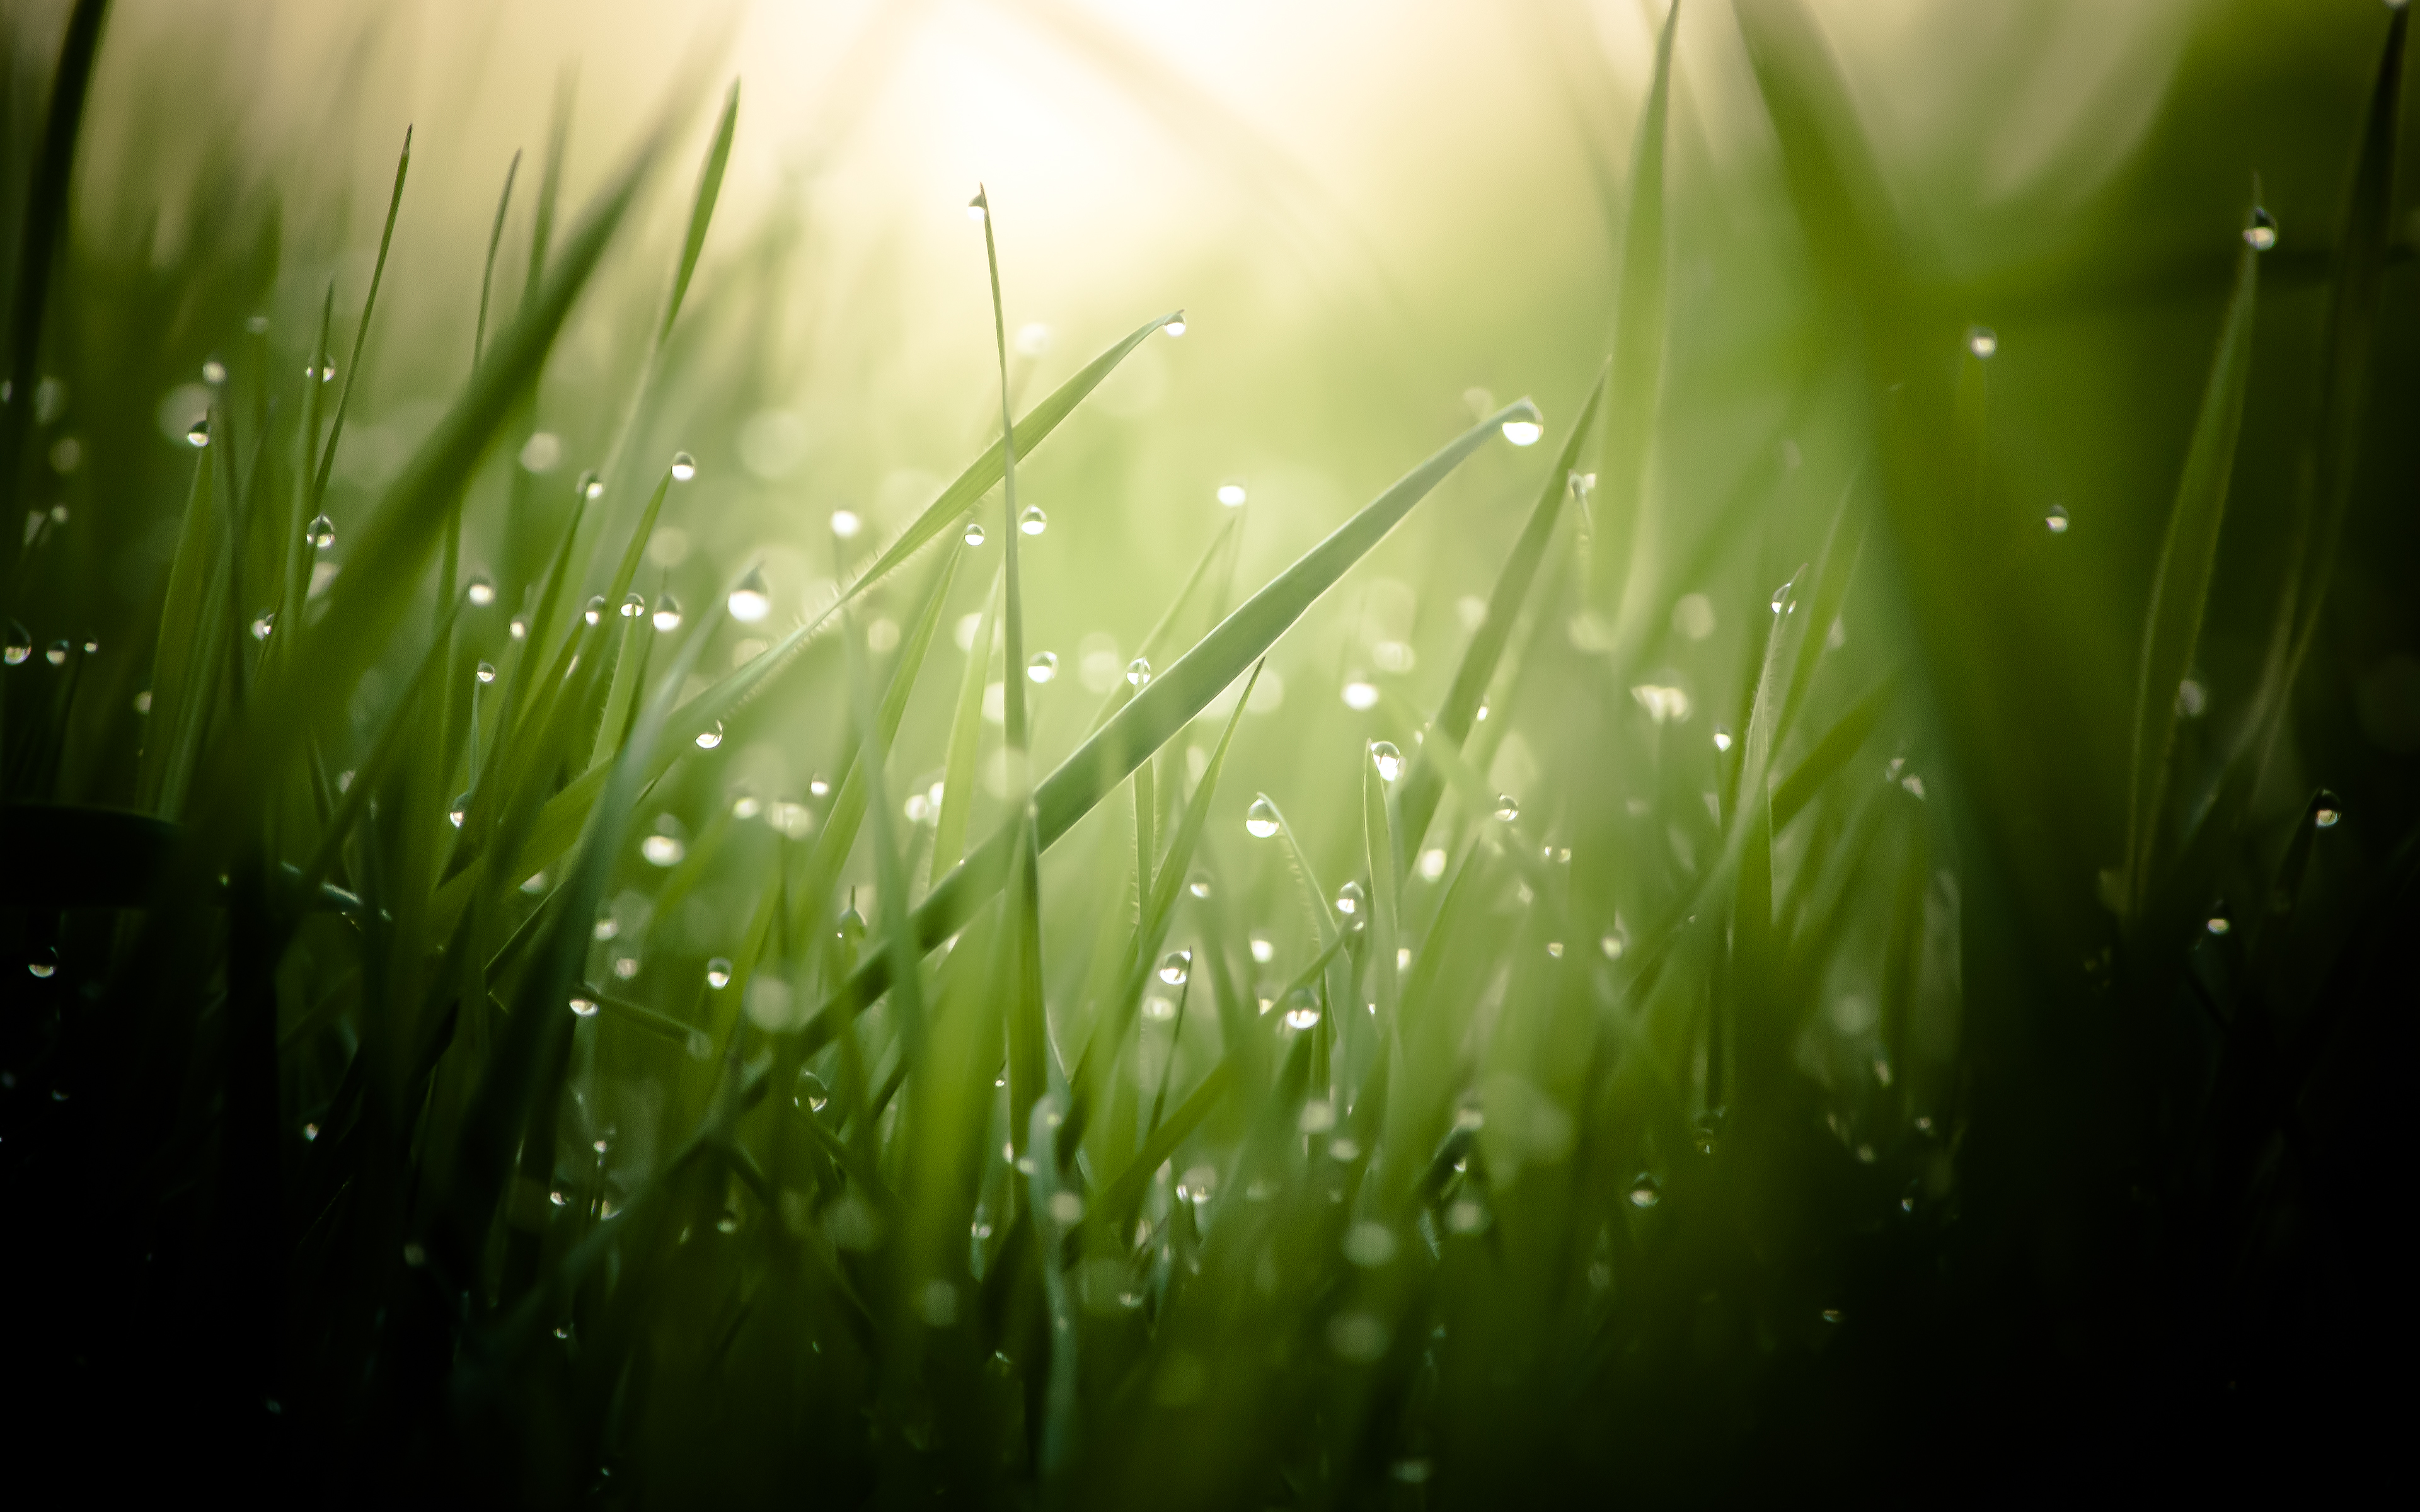 Morning dew on a green grass wallpapers and images   wallpapers 3840x2400